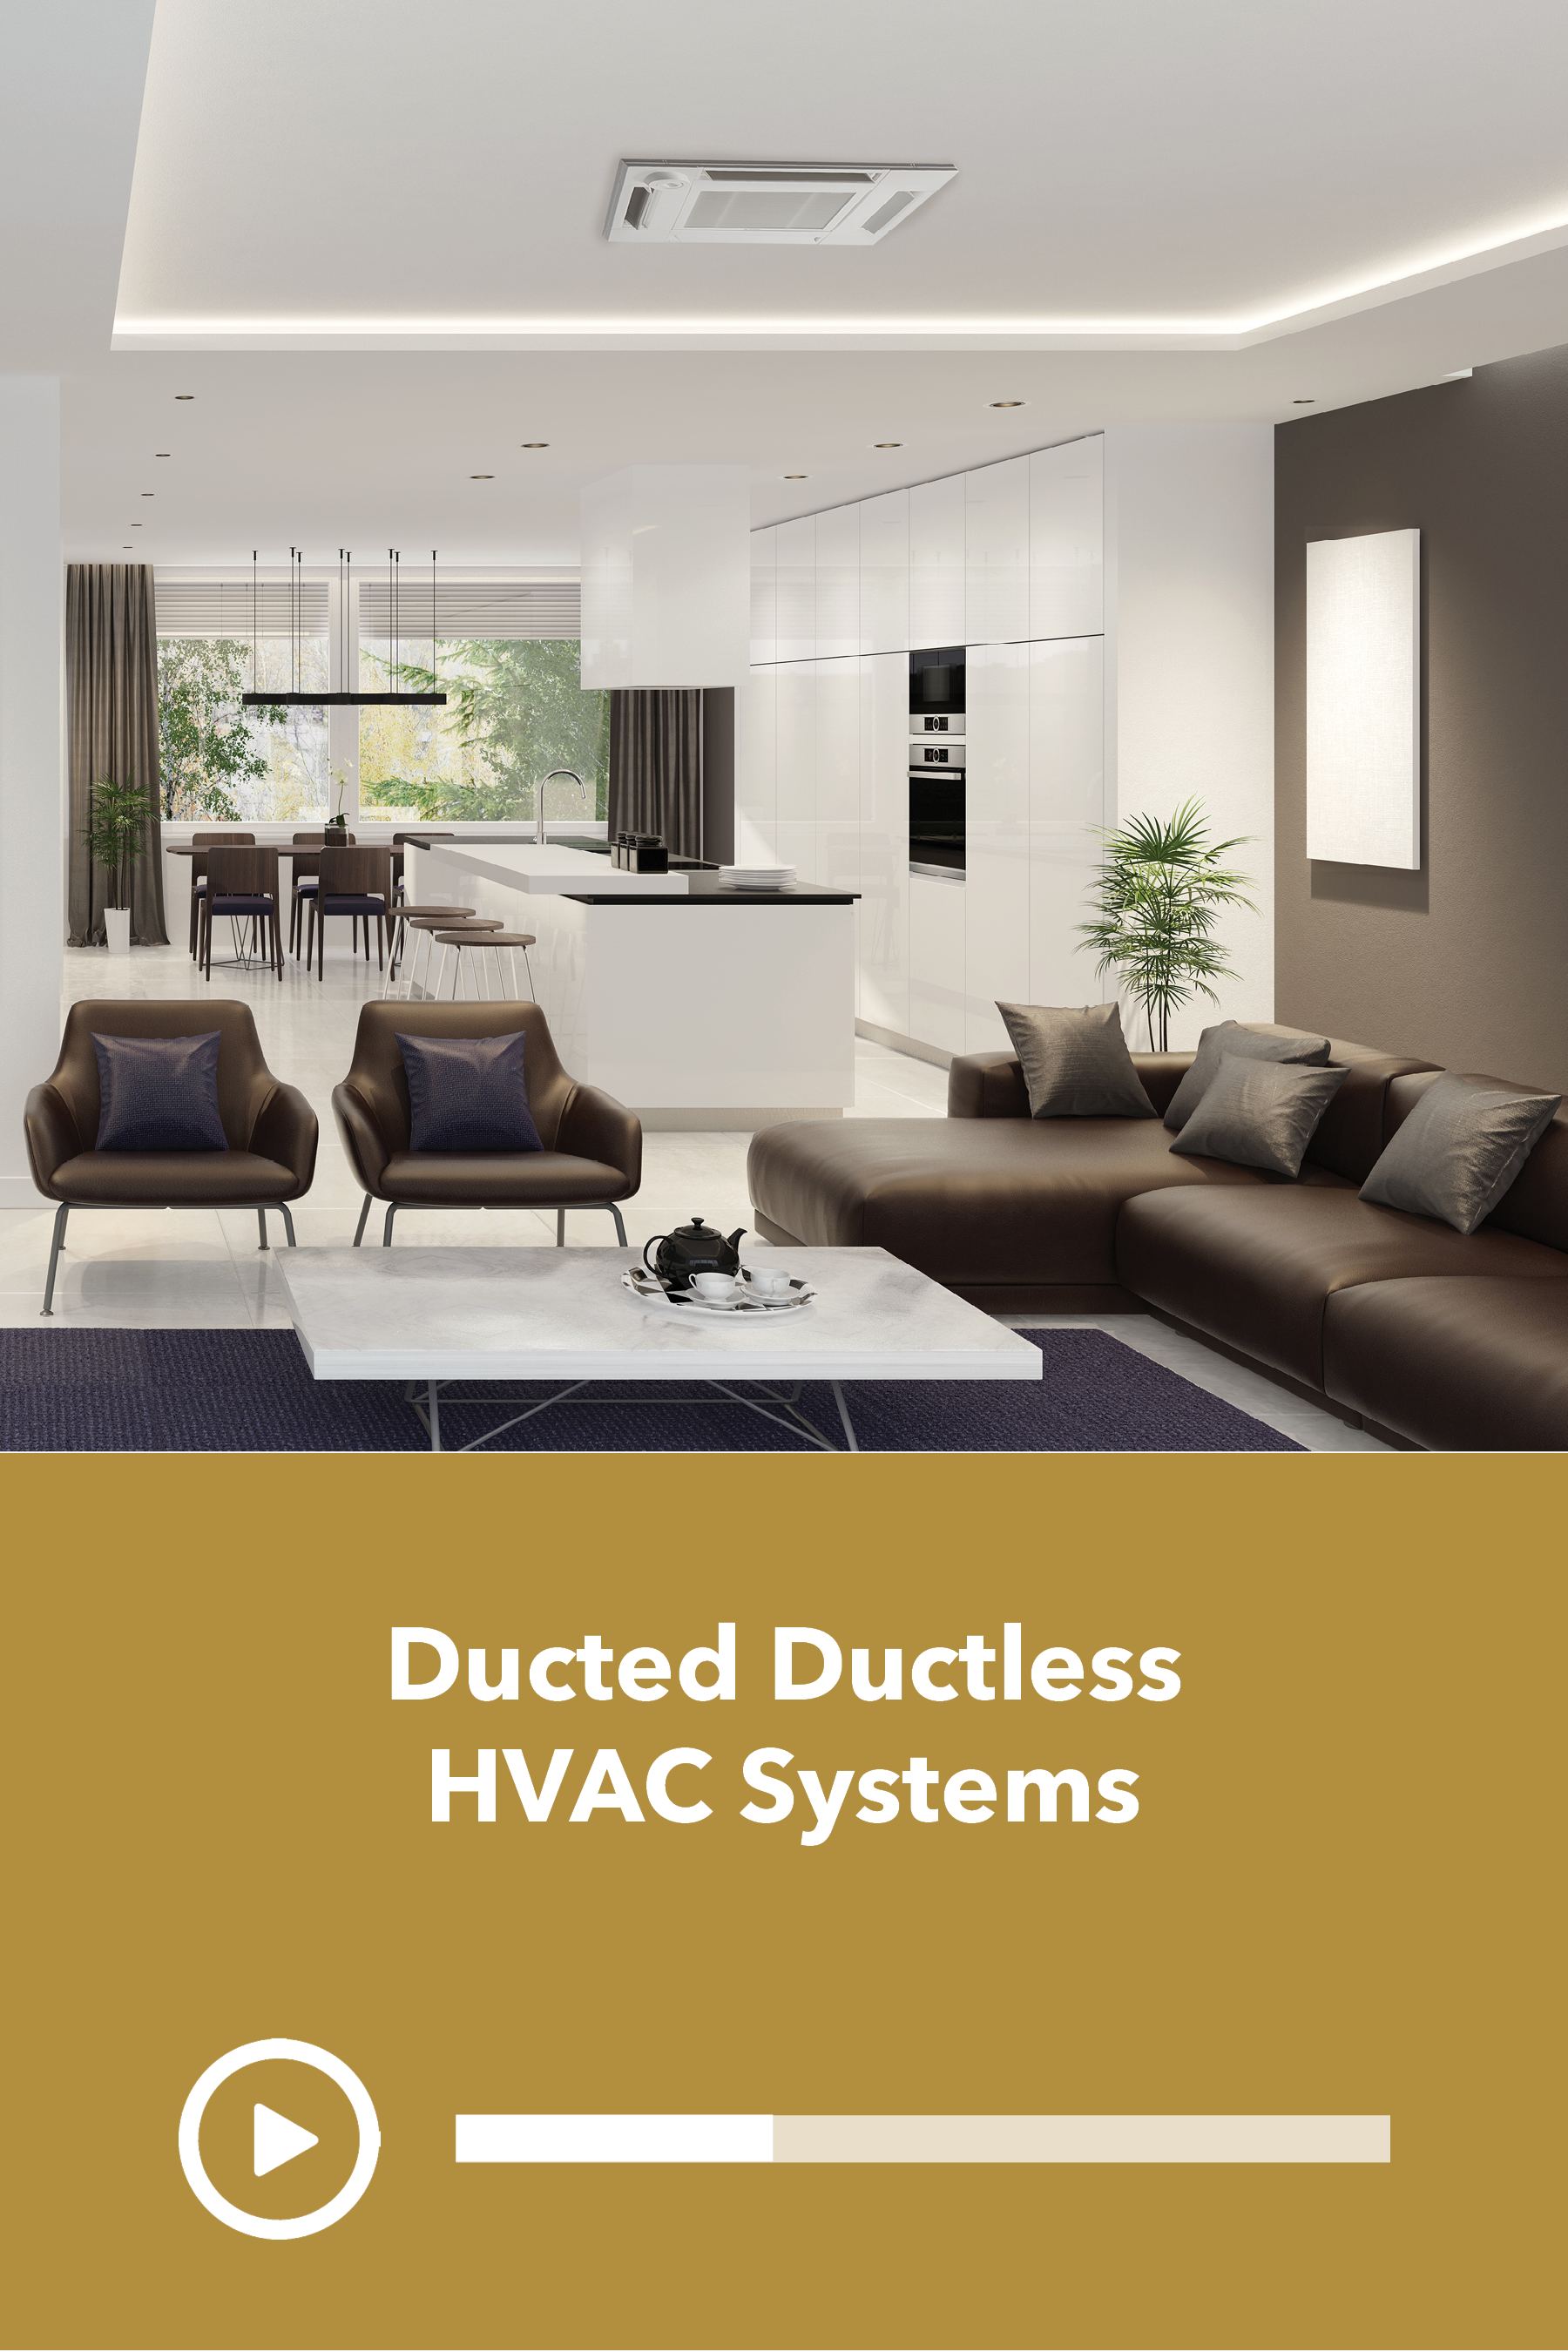 Ducted Ductless Systems In 2020 Ductless Hvac System Hvac